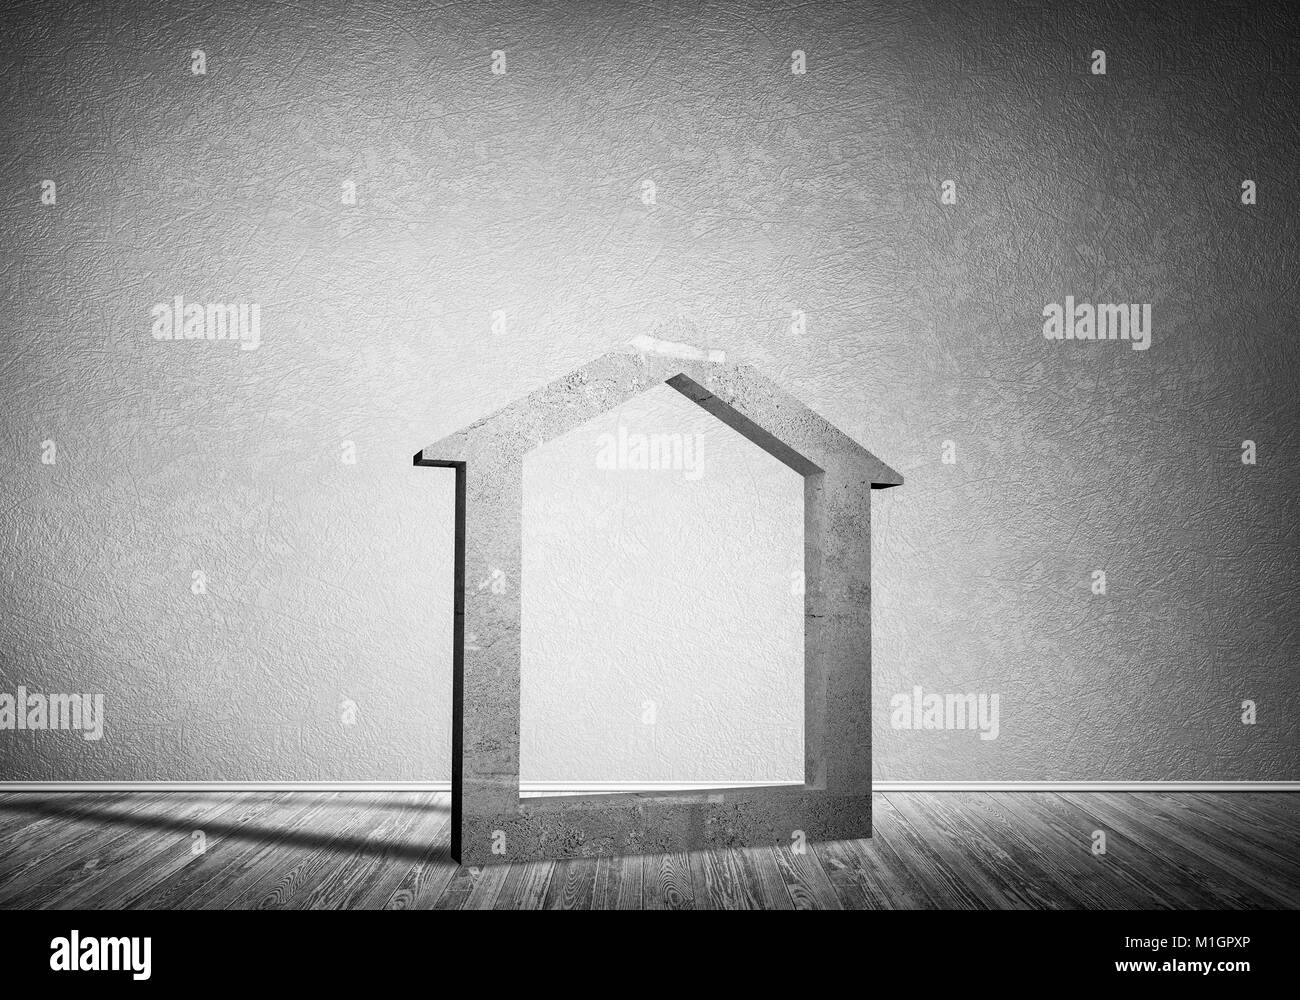 Conceptual background image of concrete home sign in room with w - Stock Image